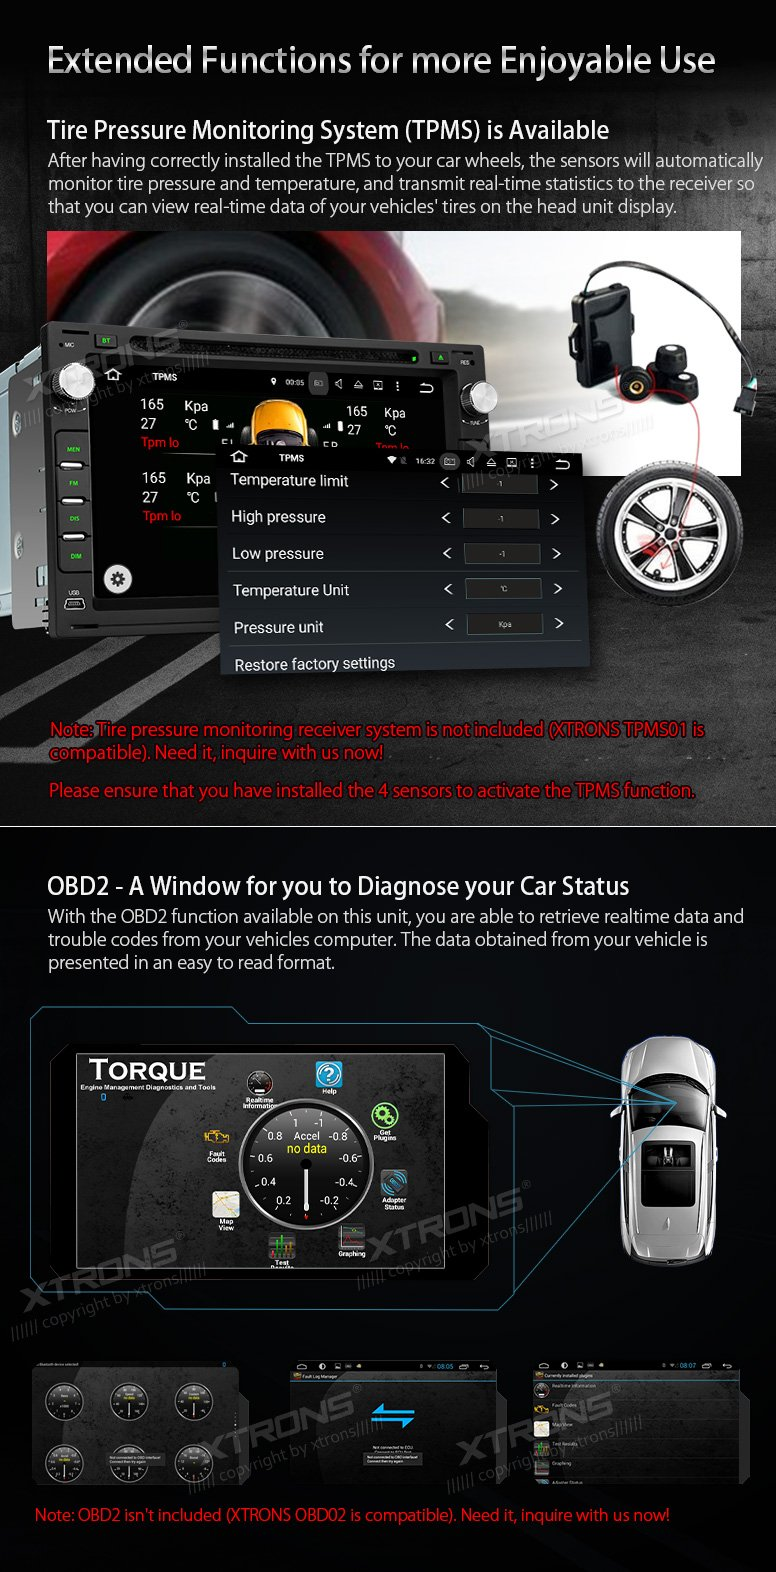 XTRONS Android 6.0 Octa-Core 64Bit 7 Inch Capacitive Touch Screen Car Stereo Radio DVD Player GPS CANbus Screen Mirroring Function OBD2 Tire Pressure Monitoring for VW Passat B5 MK3/4/5 by XTRONS (Image #8)